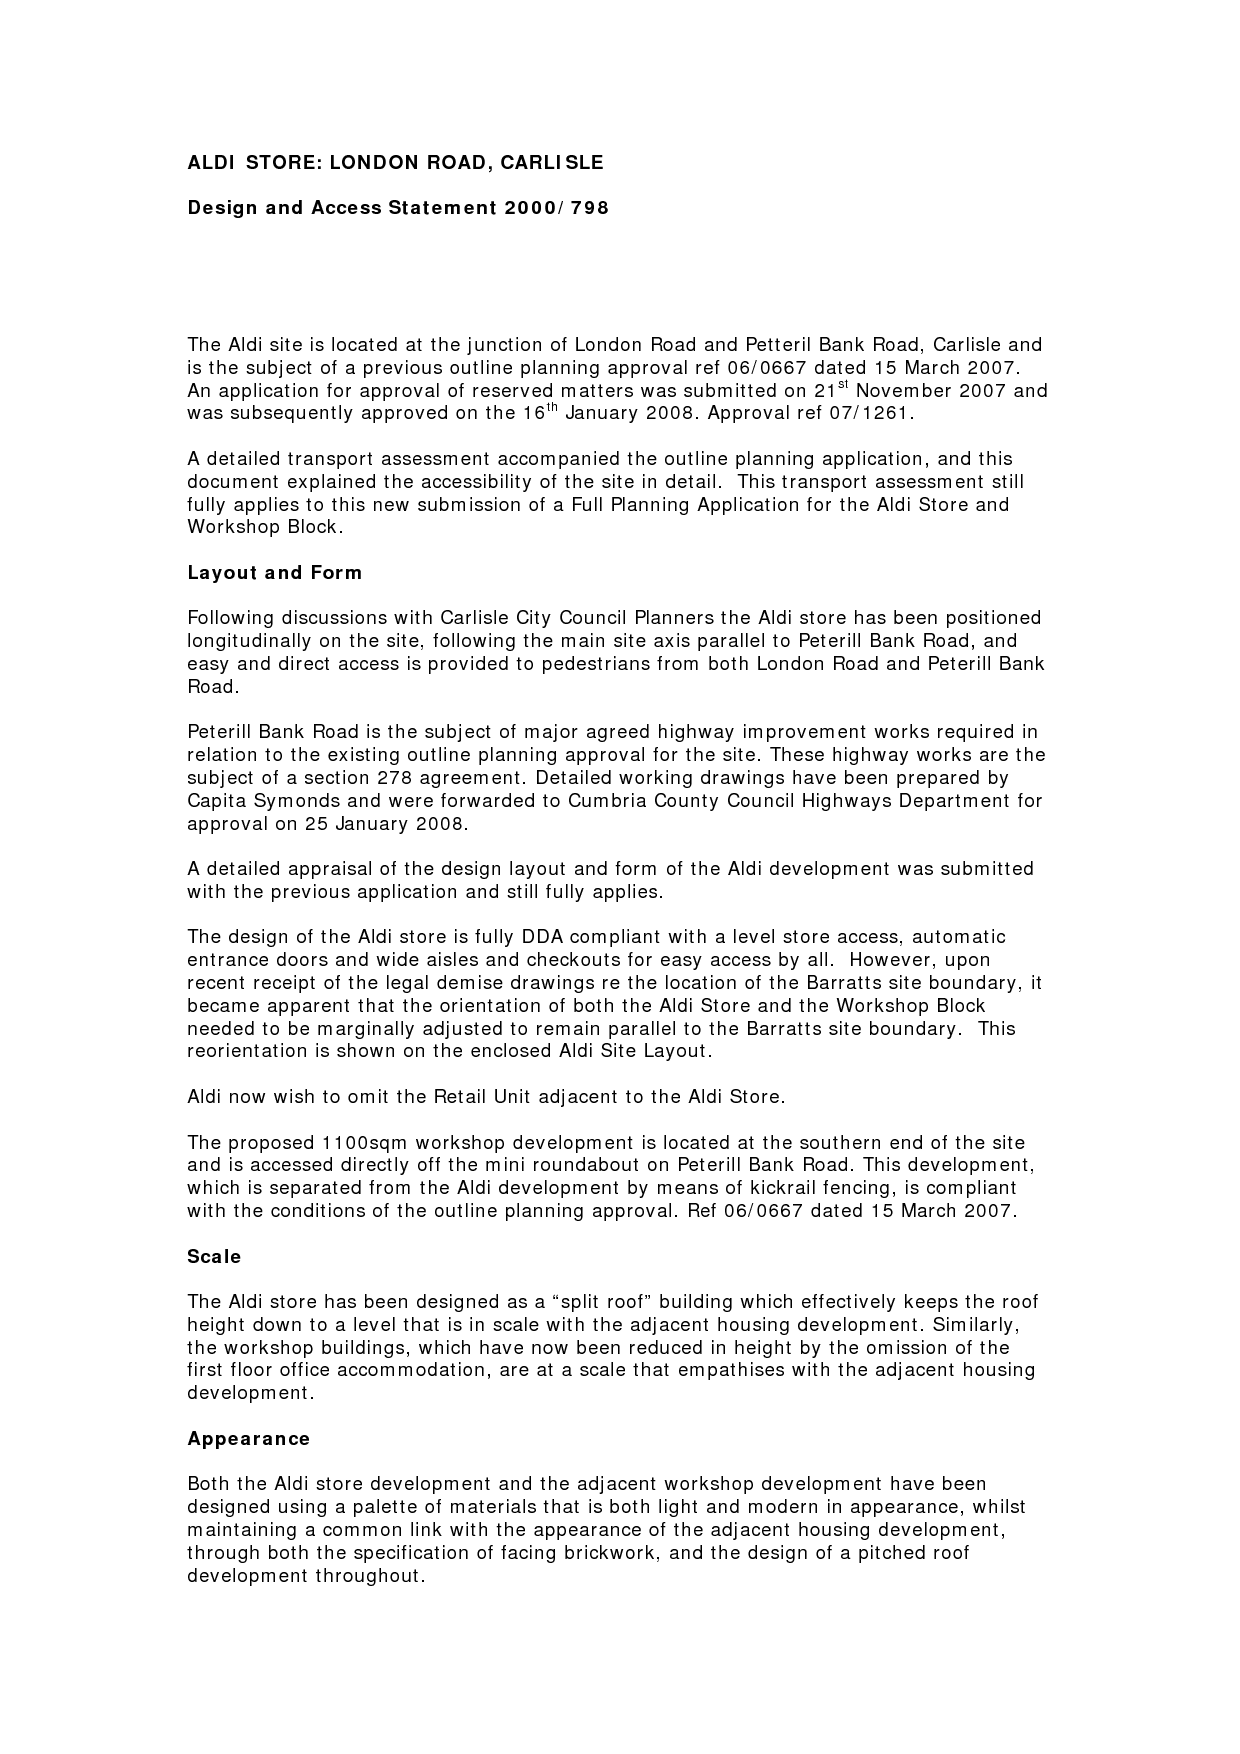 Access Statement Template Small Business Income And Expenses